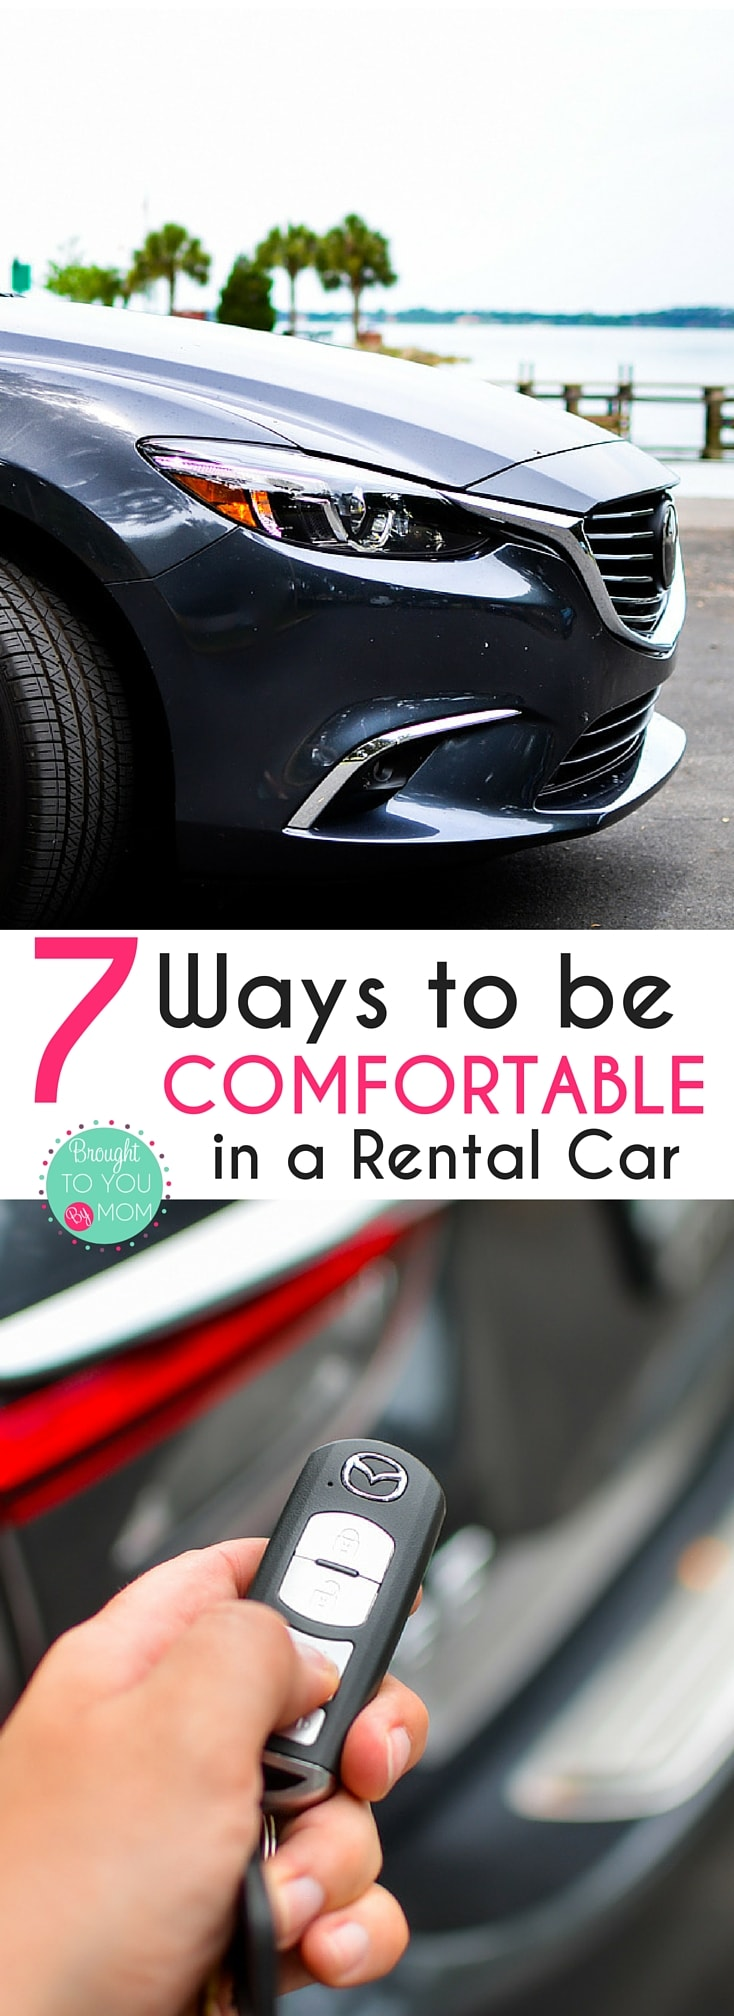 Traveling with a rental soon? Check out 7 Ways to Be Comfortable in a Rental Car. Tips to make a new place and new car easier to enjoy. Number 4 I had to convince myself of.